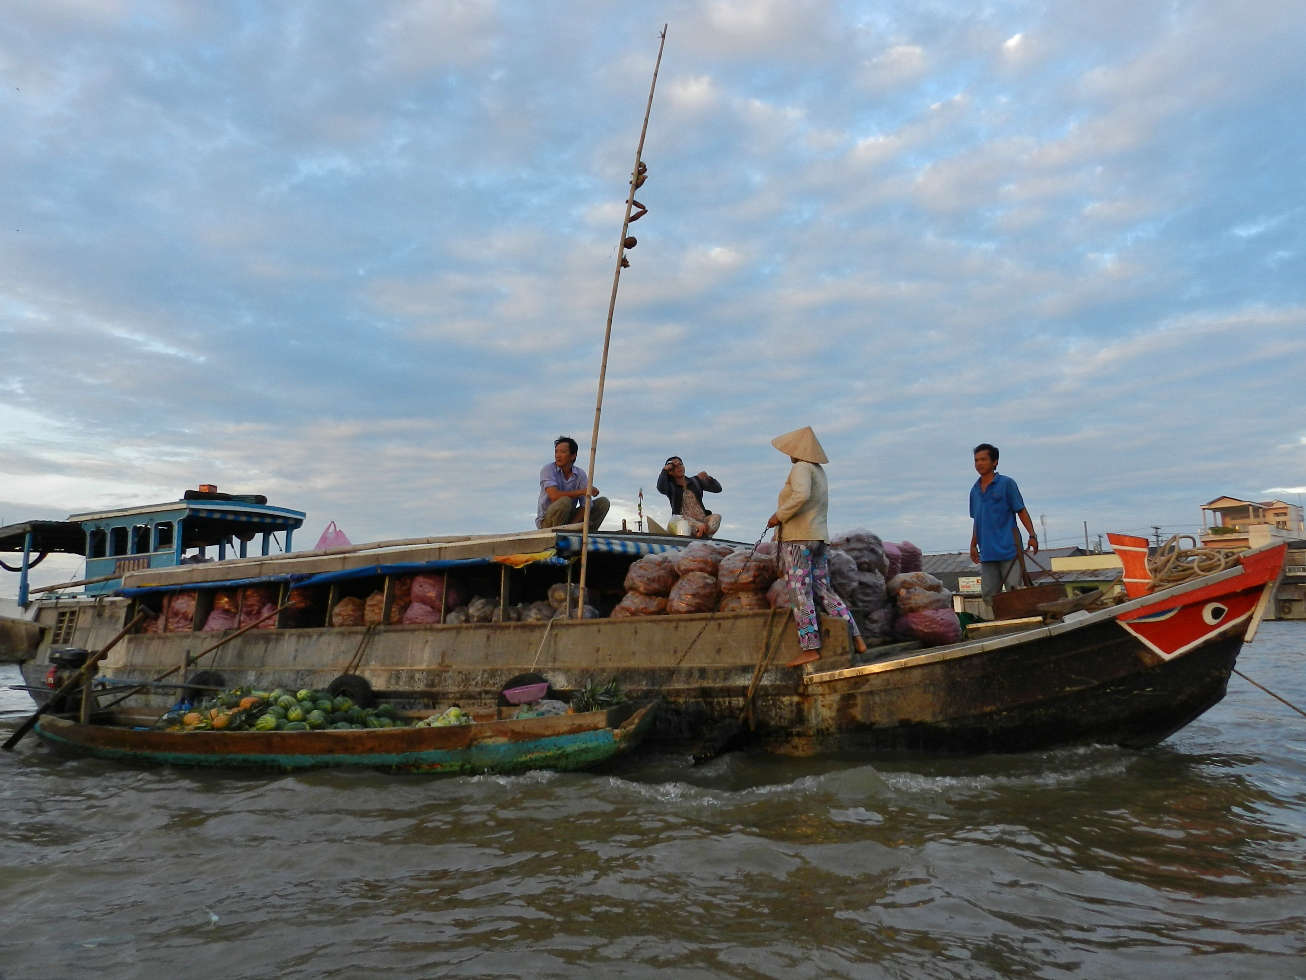 Cai Rang Market is, like most floating markets, at its busiest at dawn